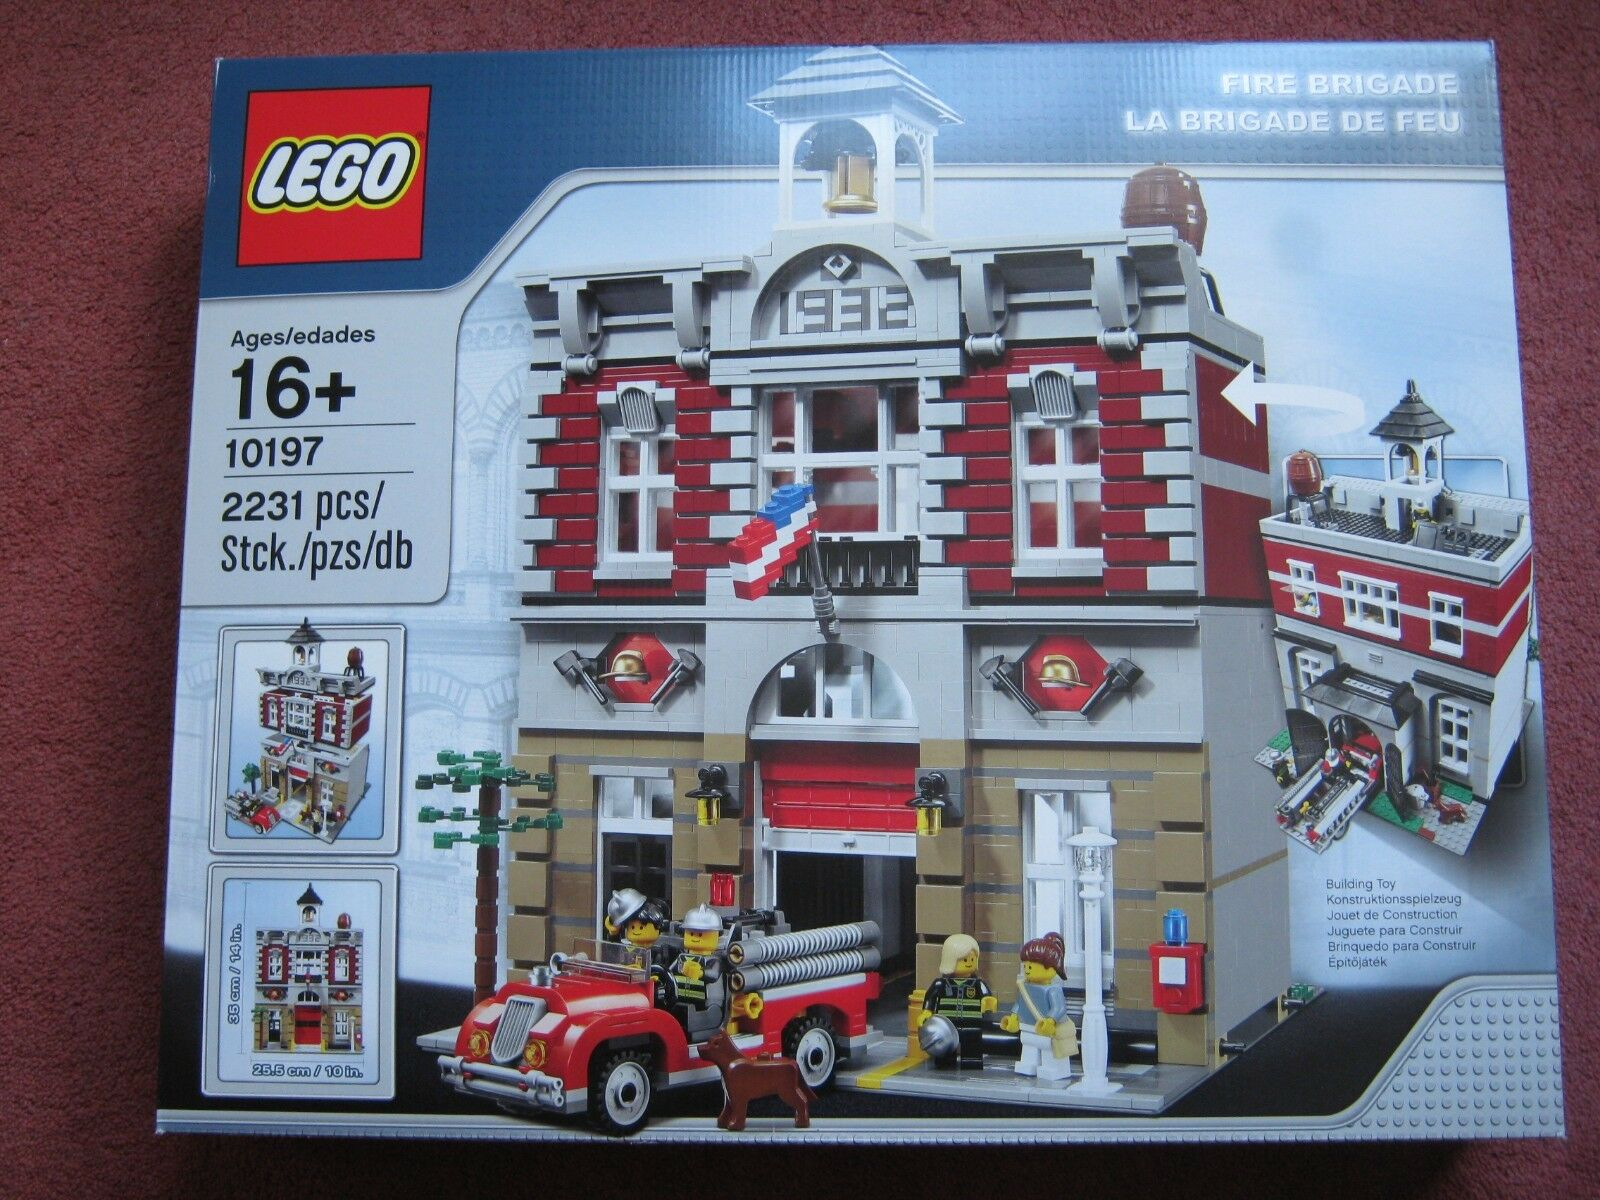 Lego 10197 Fire Brigade Créateur ADVANCED ADVANCED ADVANCED MODULAR Neuf Scellé Box Set-achat immédiat dd5365